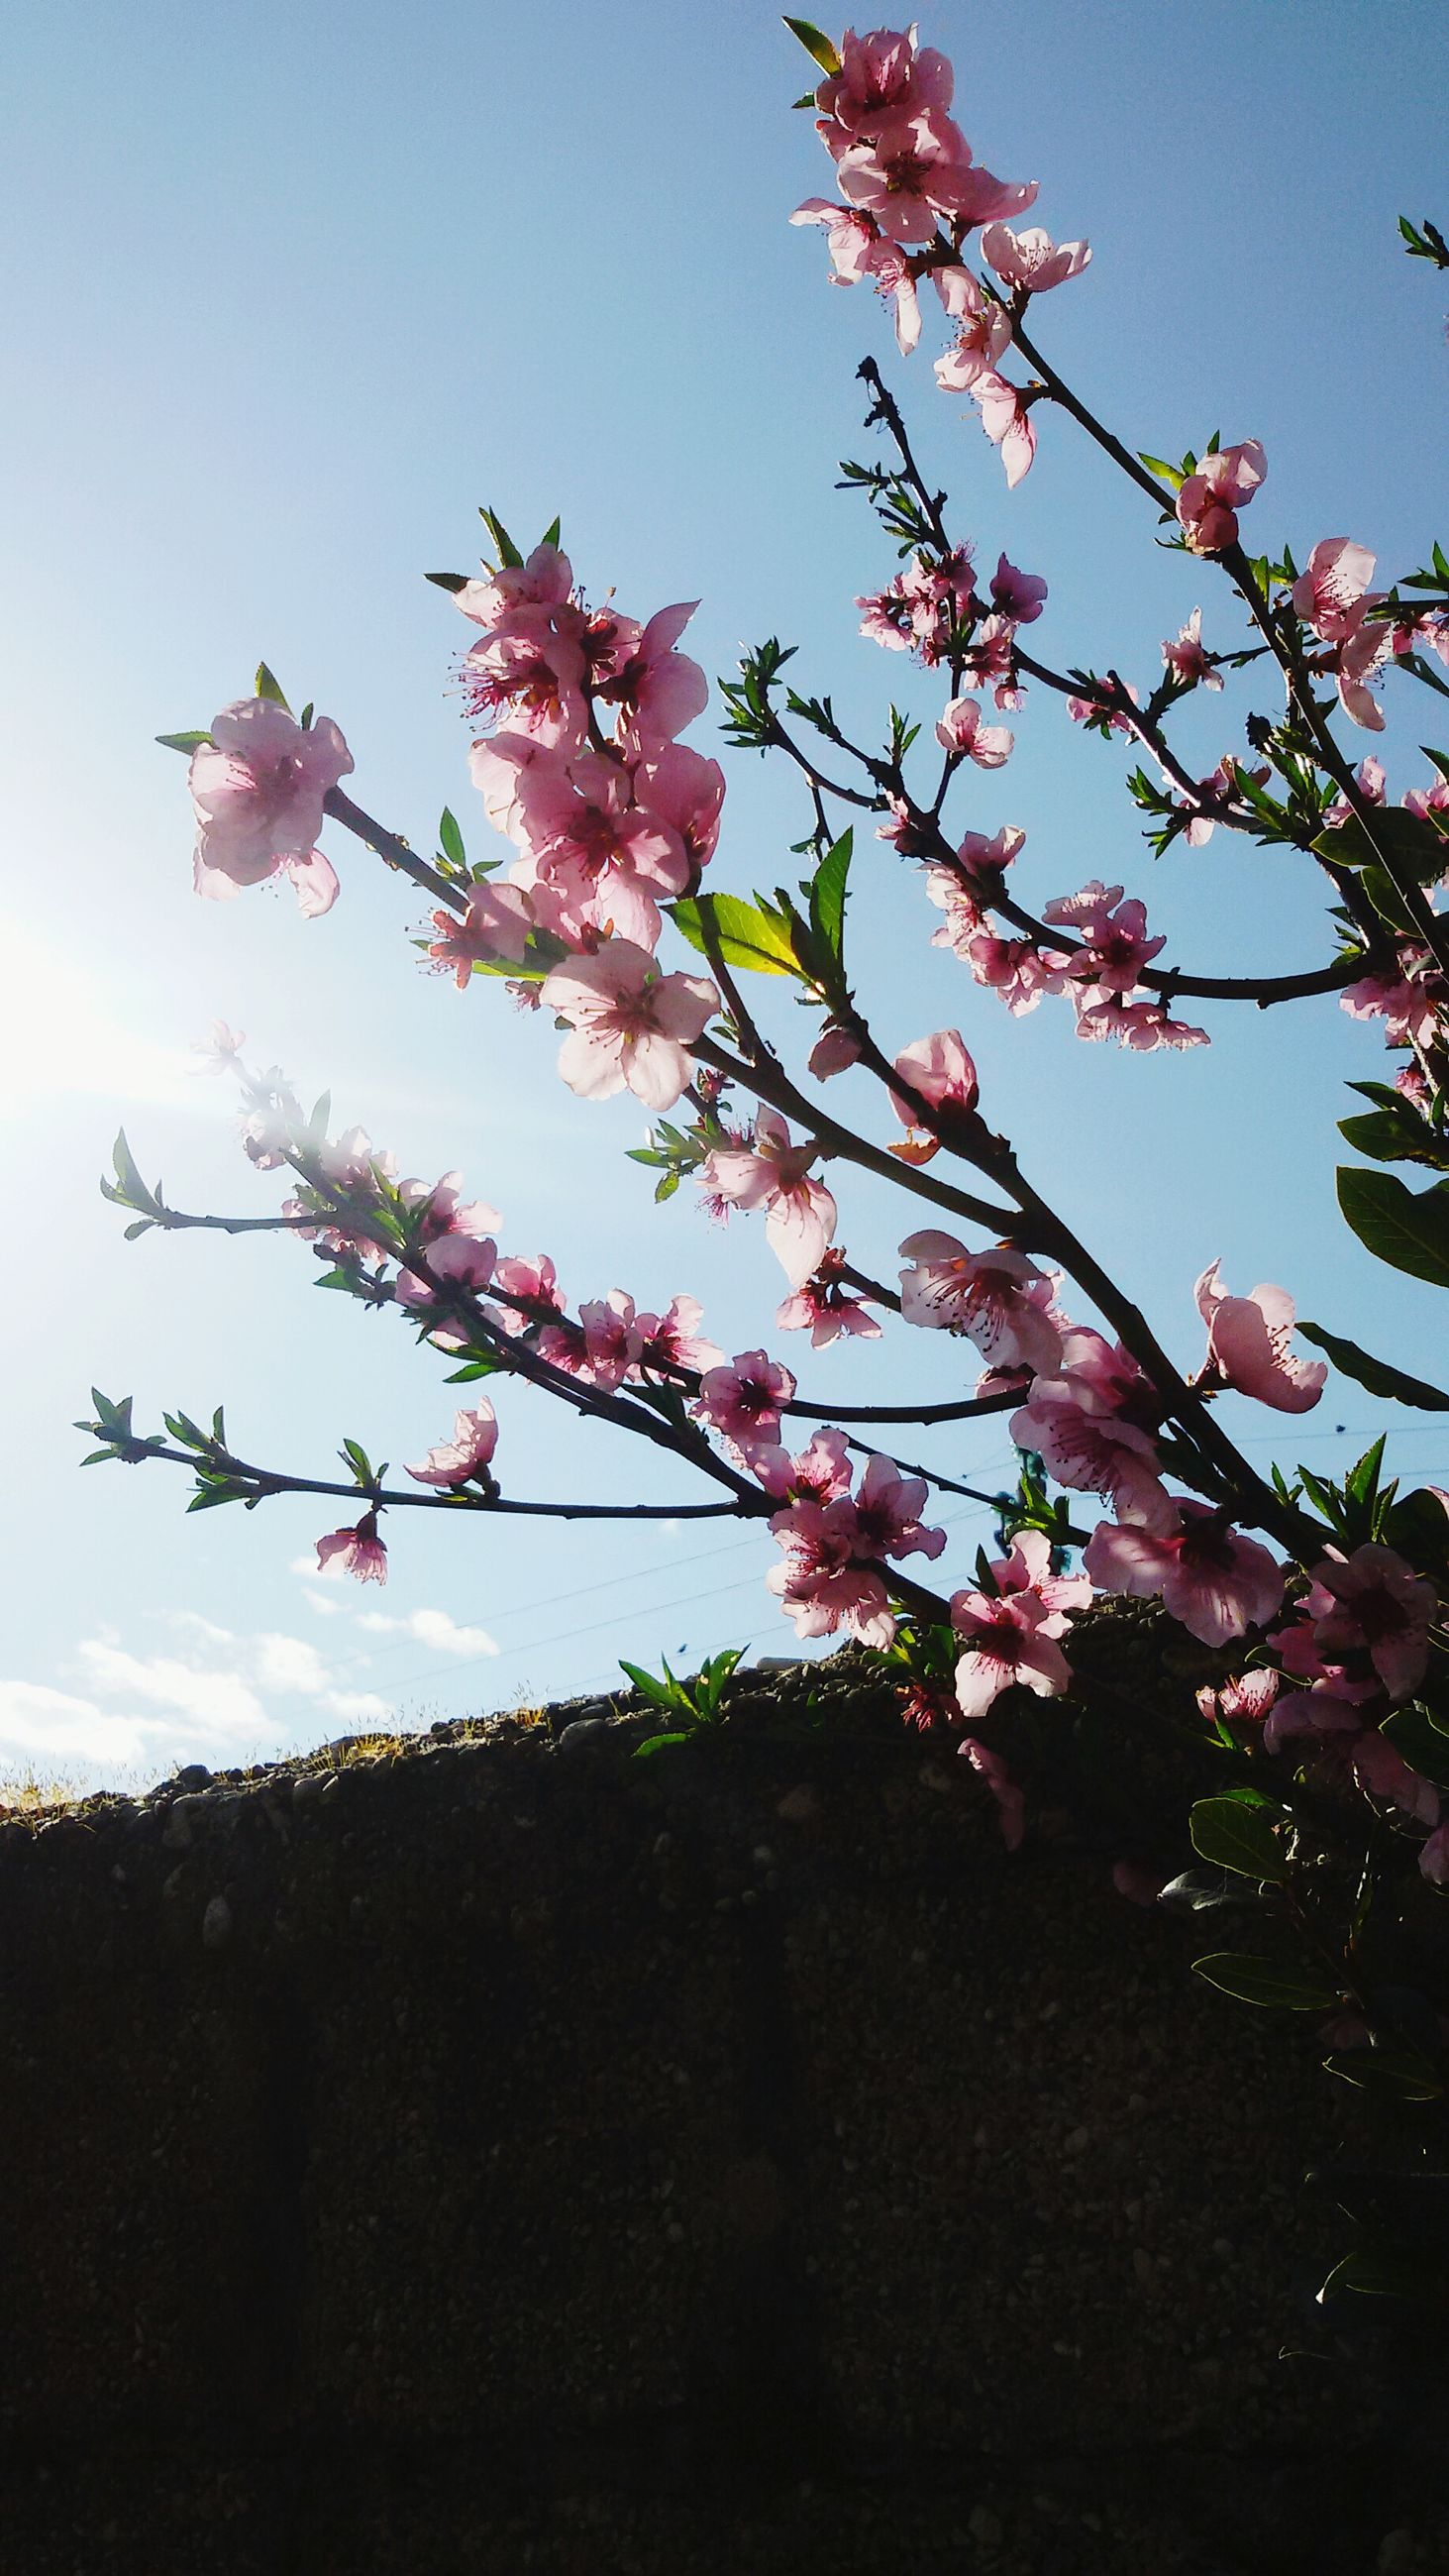 flower, freshness, tree, low angle view, growth, branch, fragility, clear sky, pink color, beauty in nature, nature, sky, blossom, blooming, cherry tree, cherry blossom, in bloom, springtime, day, sunlight